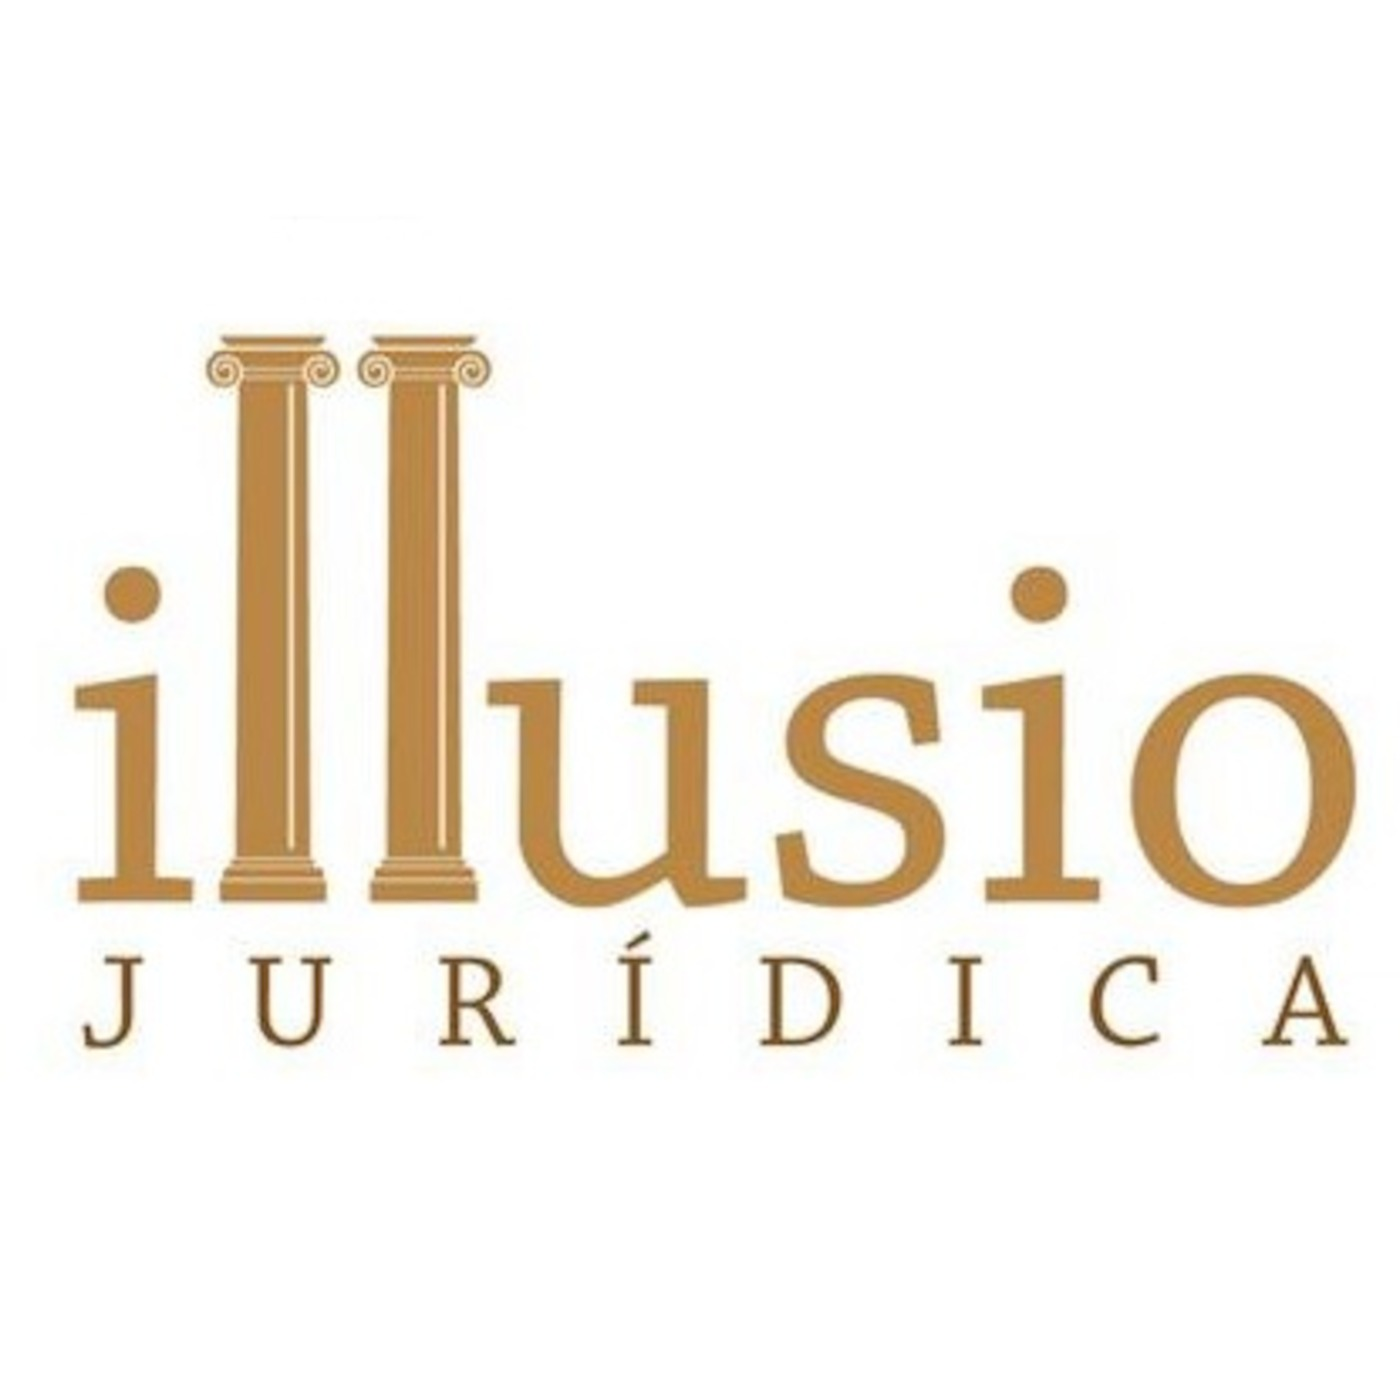 Illusio Jurídica